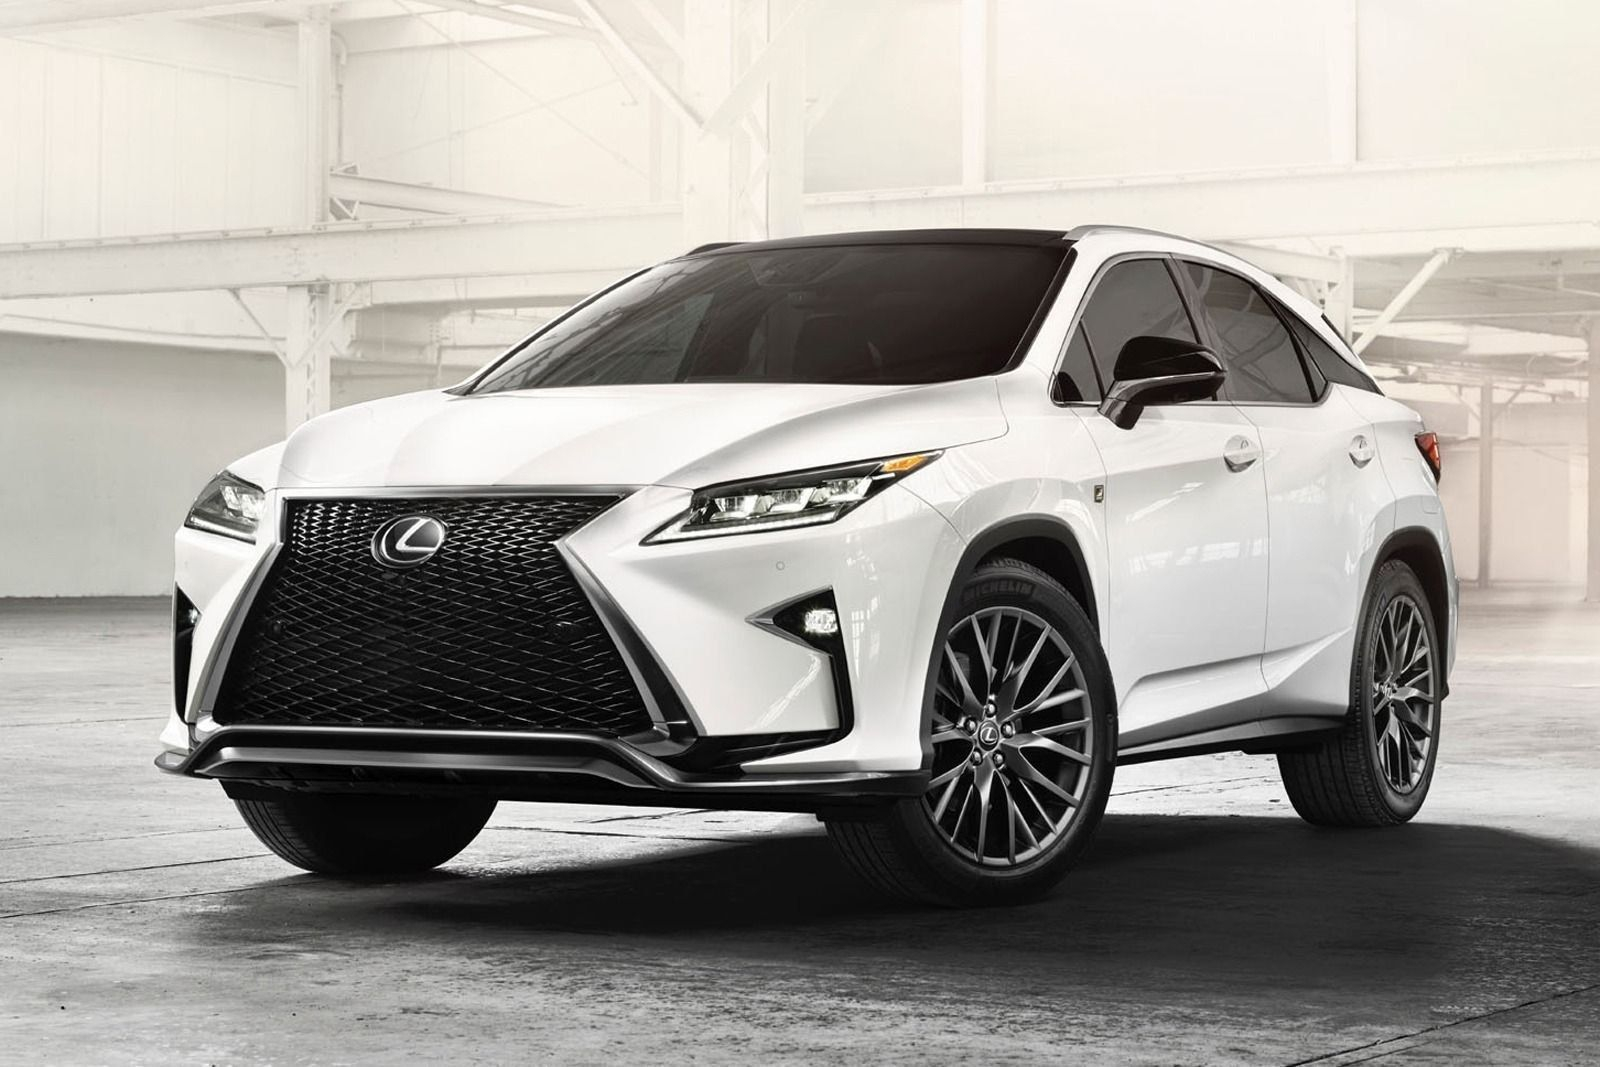 92 A 2020 Lexus RX 450h New Model and Performance